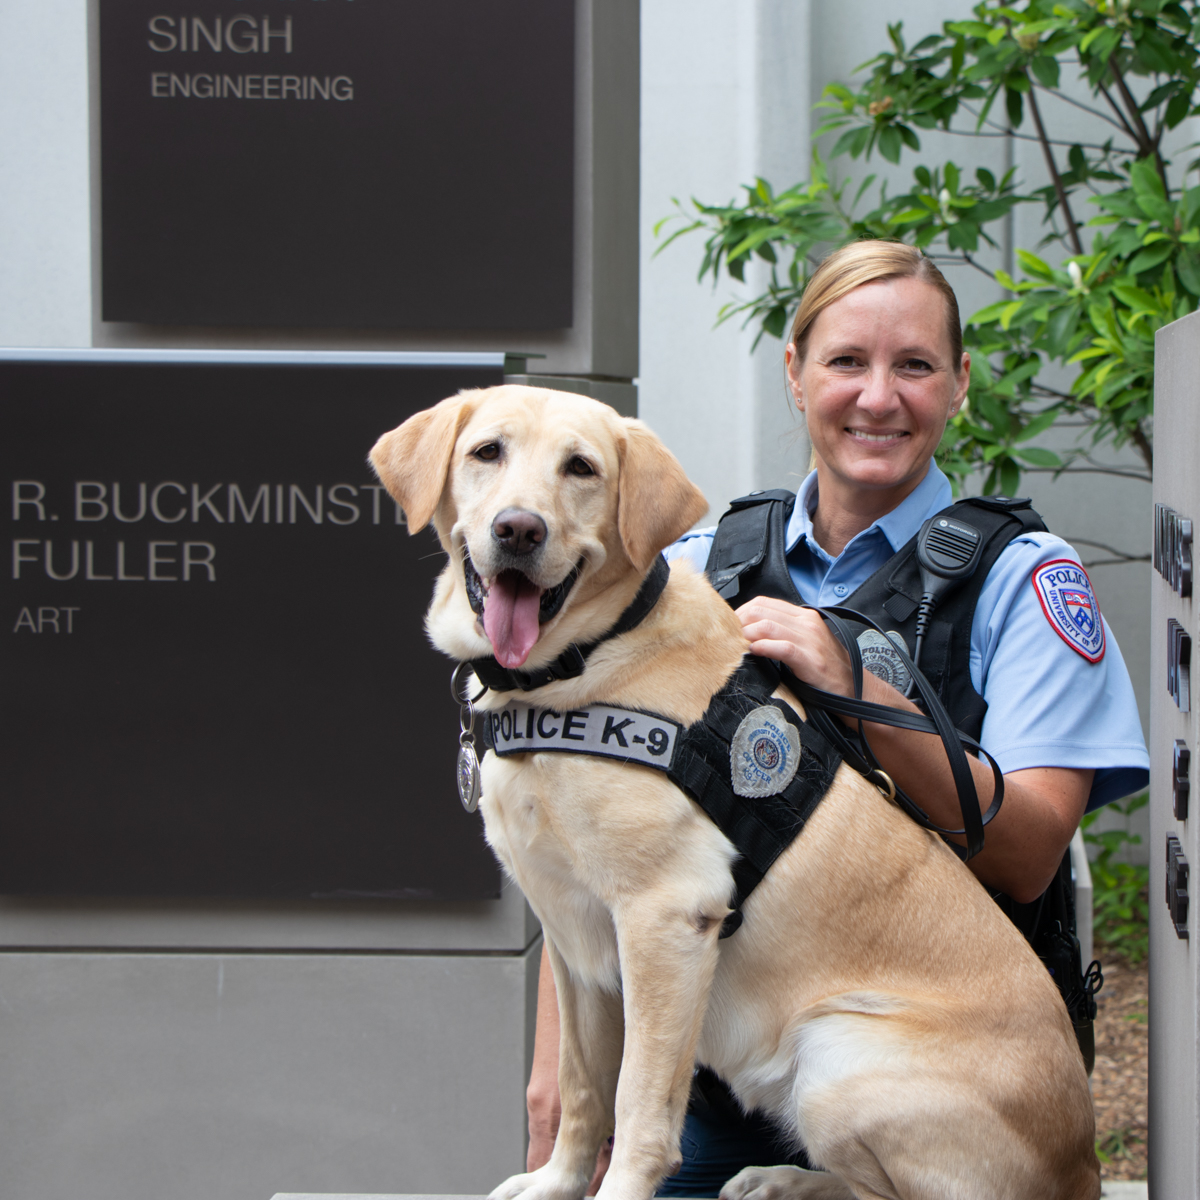 Officer Wesley poses outdoors with K9 Officer Socks, a yellow Labrador Retriever